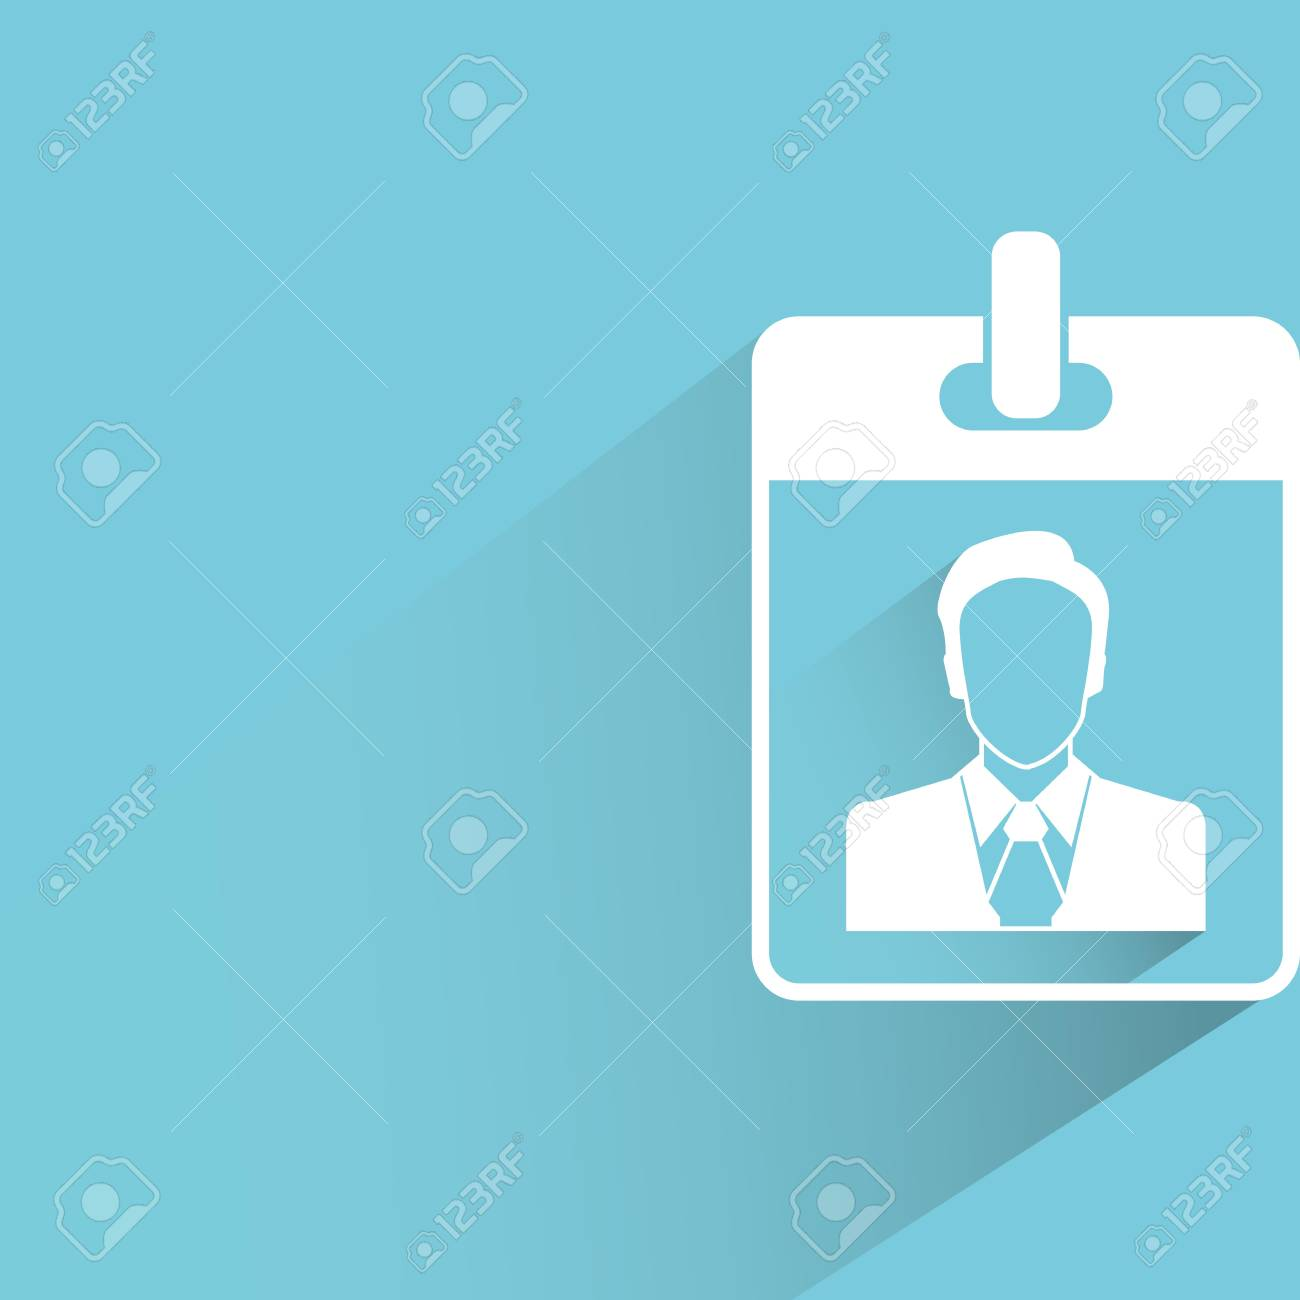 business identification card royalty free cliparts vectors and